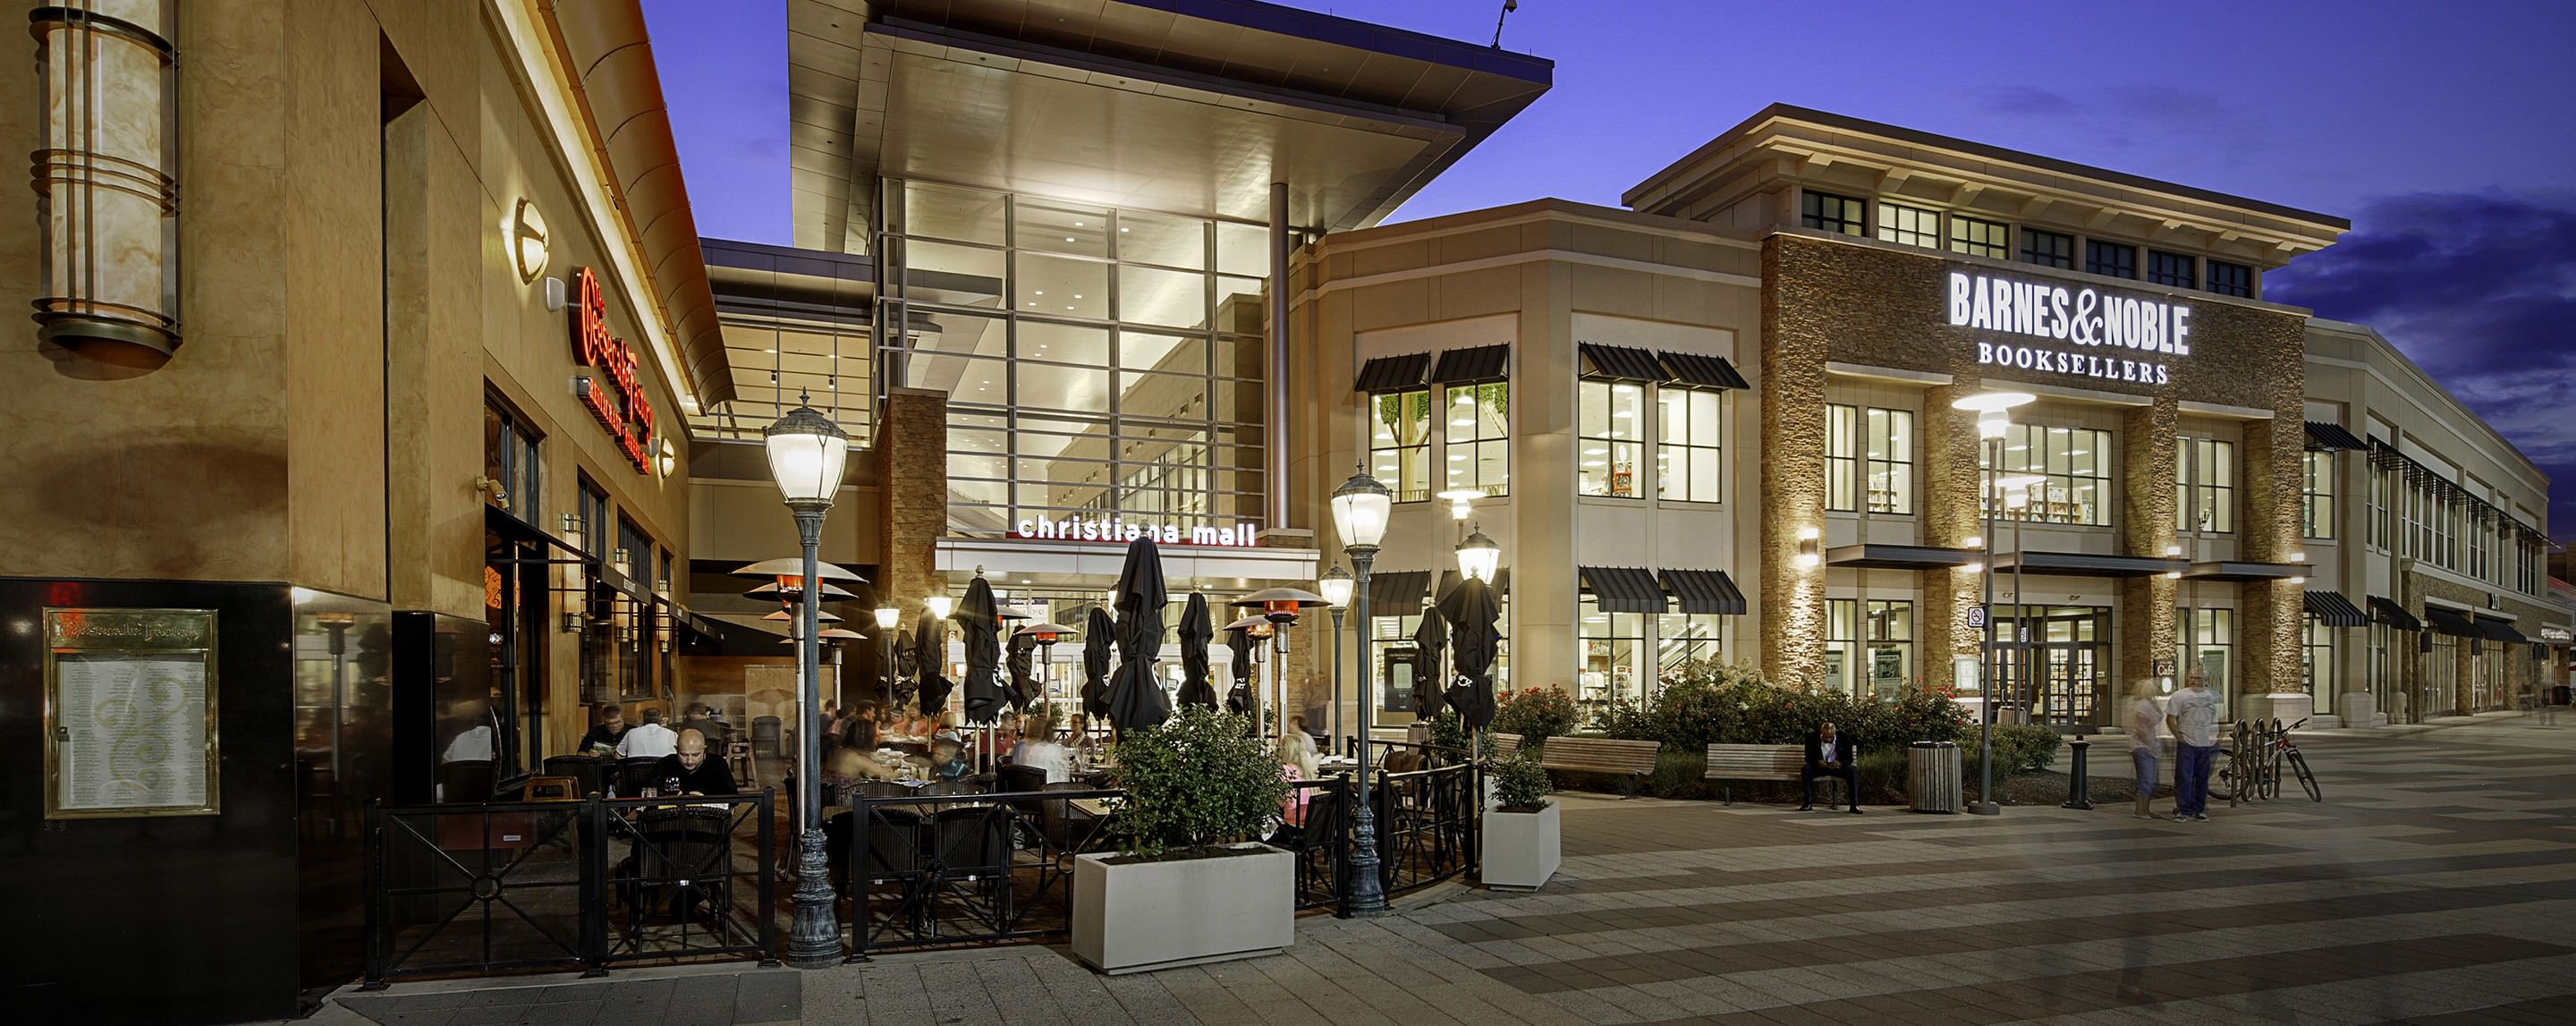 Outside at night, shoppers and diners eat in an outdoor seating area of Cheesecake Factory by the Christiana Mall entrance.